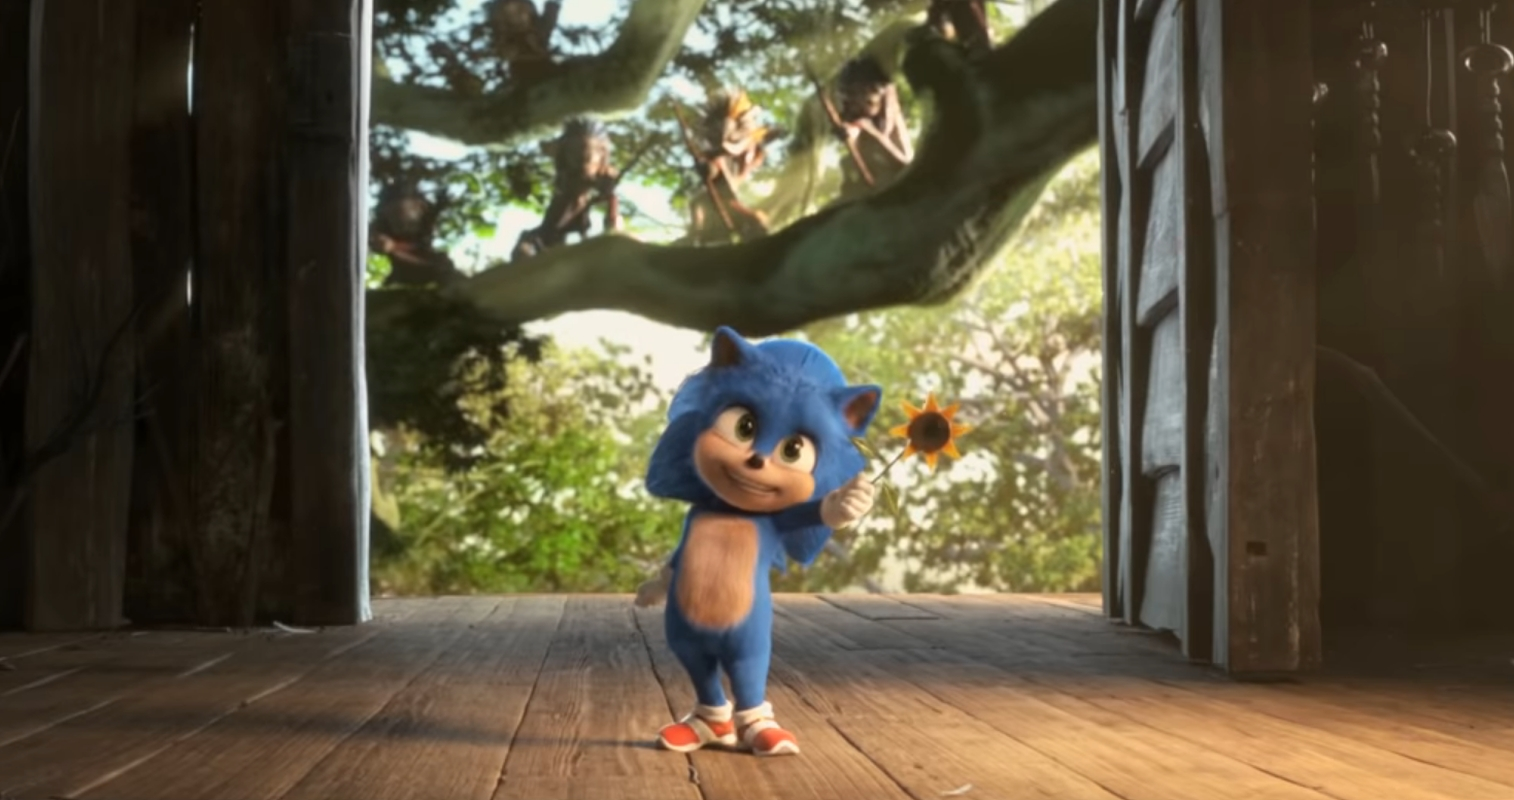 New Sonic The Hedgehog Trailer Reveals New Movie Content Including Baby Sonic